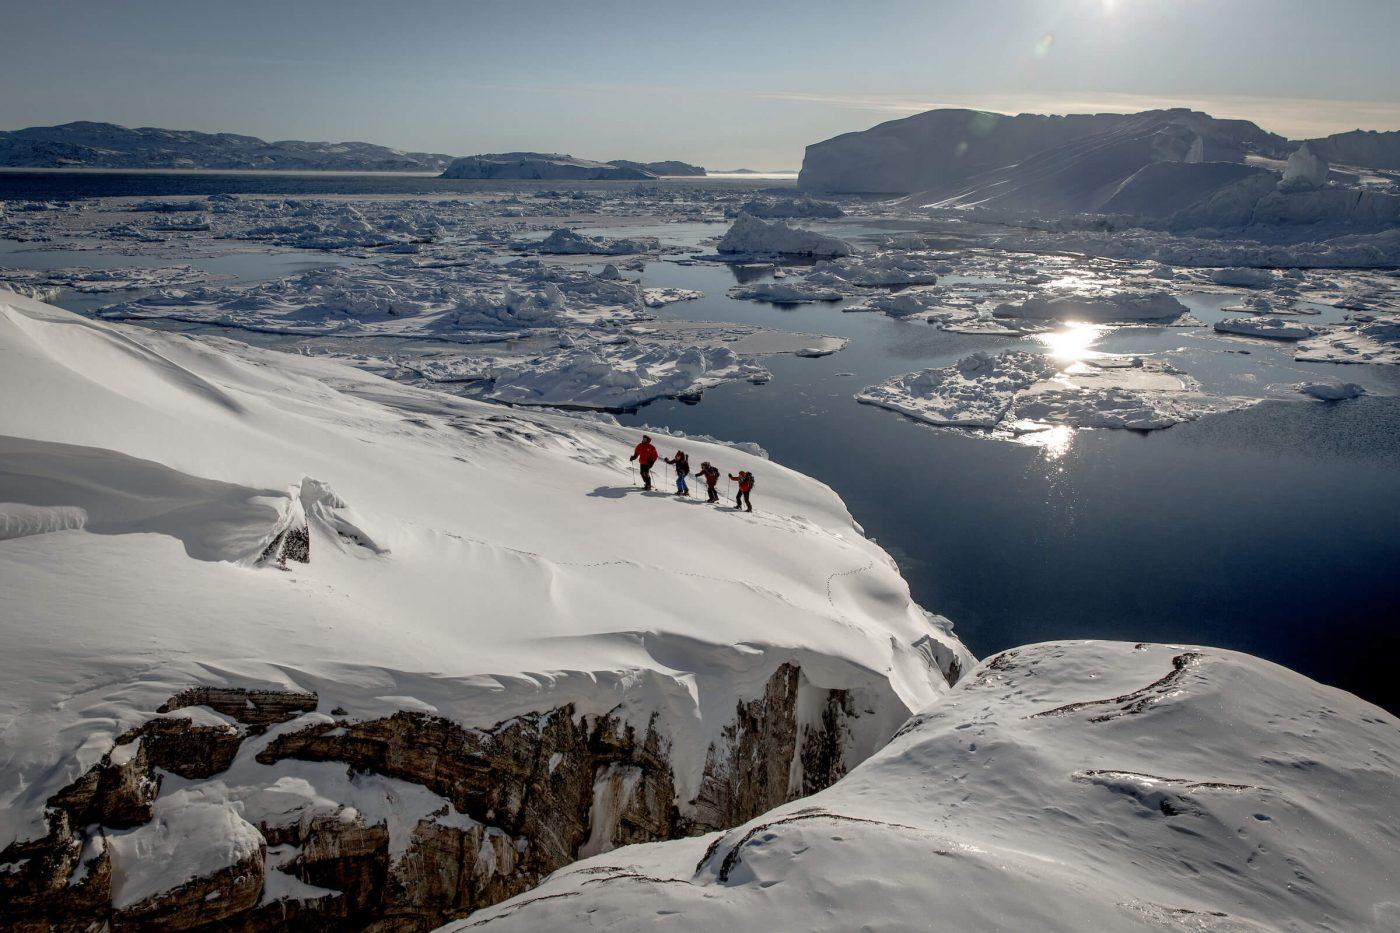 Snowshoeing near Sermermiut on the edge of the Ilulissat ice fjord in Greenland. Photo by Mads Pihl